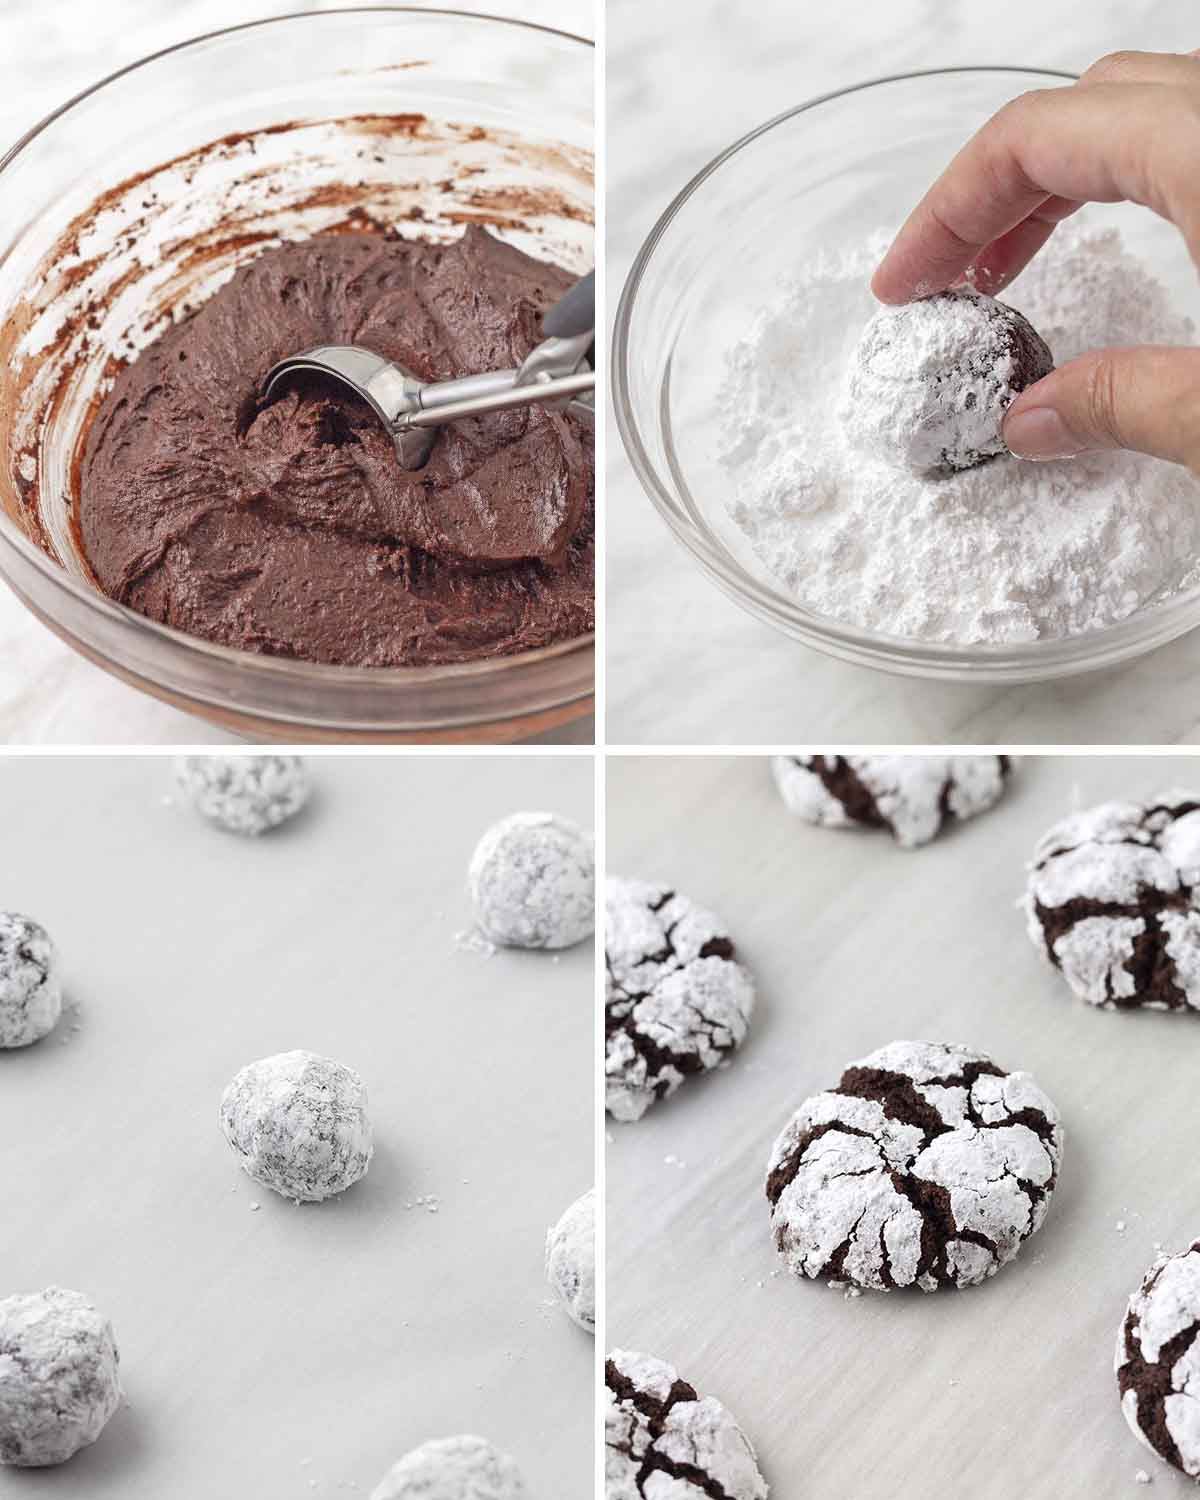 A collage of four images showing the second sequence of steps needed to make gf chocolate crinkle cookies.